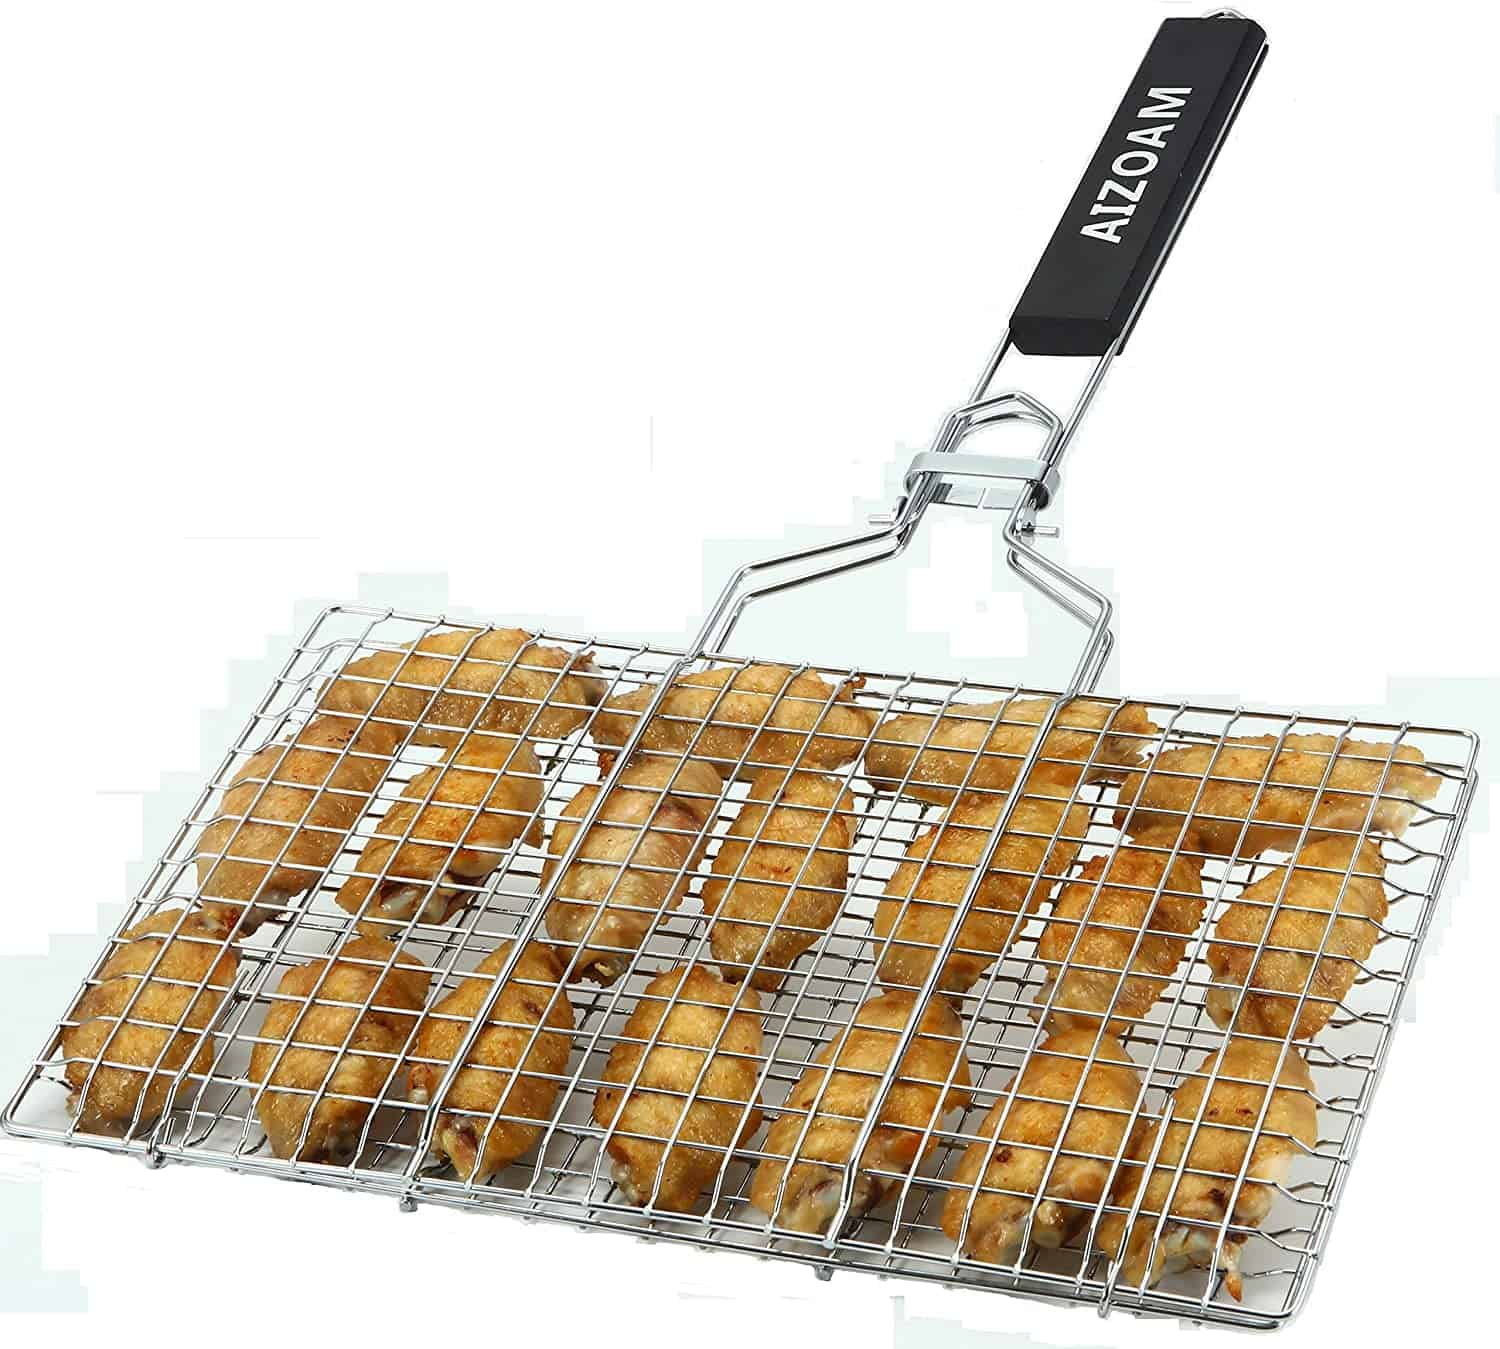 Best grill basket for camping- AIZOAM Portable Grilling Basket